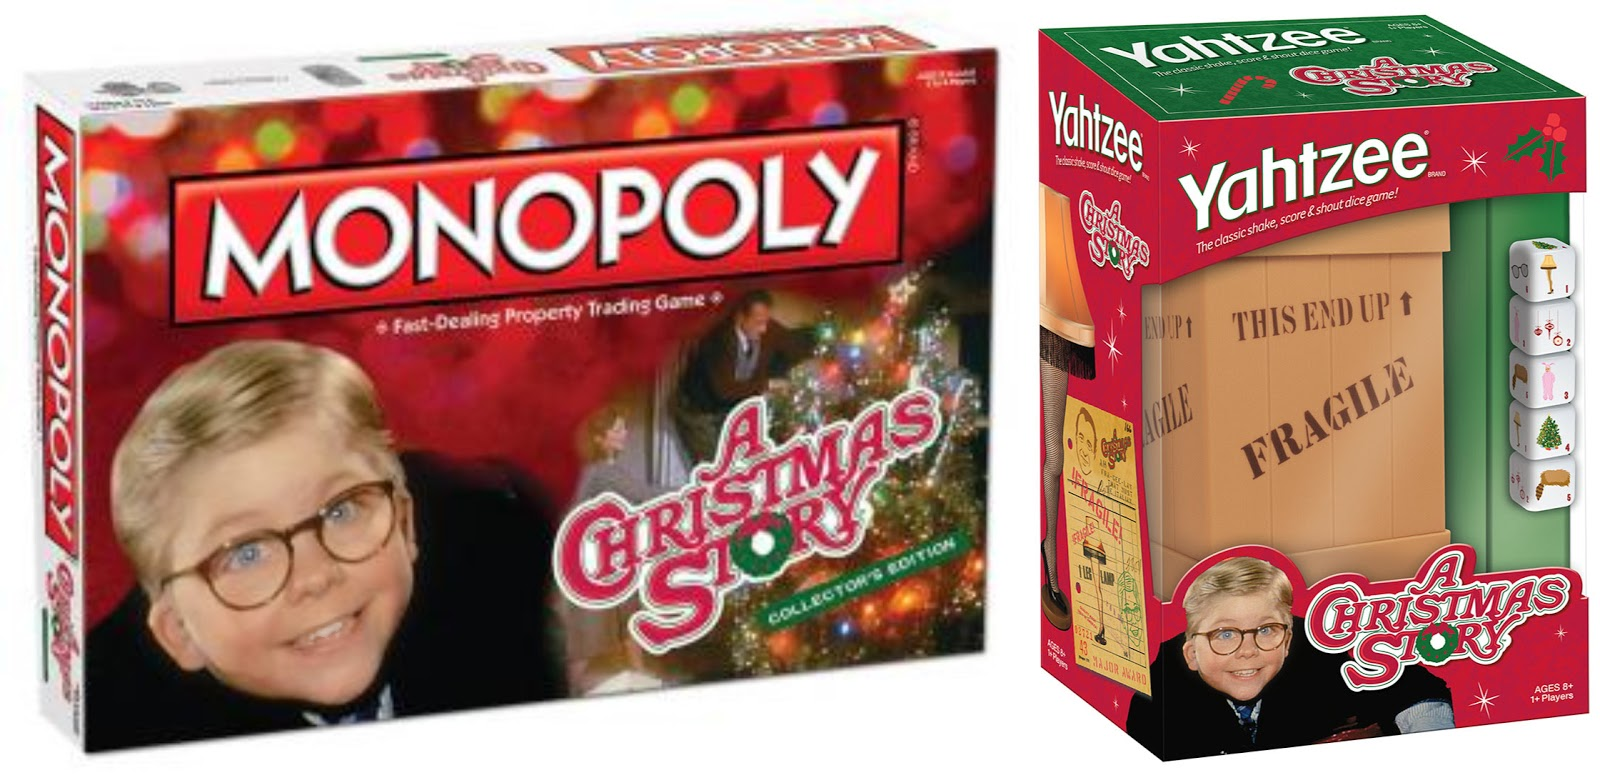 Enter the A Christmas Story Monopoly and Yahtzee Giveaway. Ends 1/3/15.